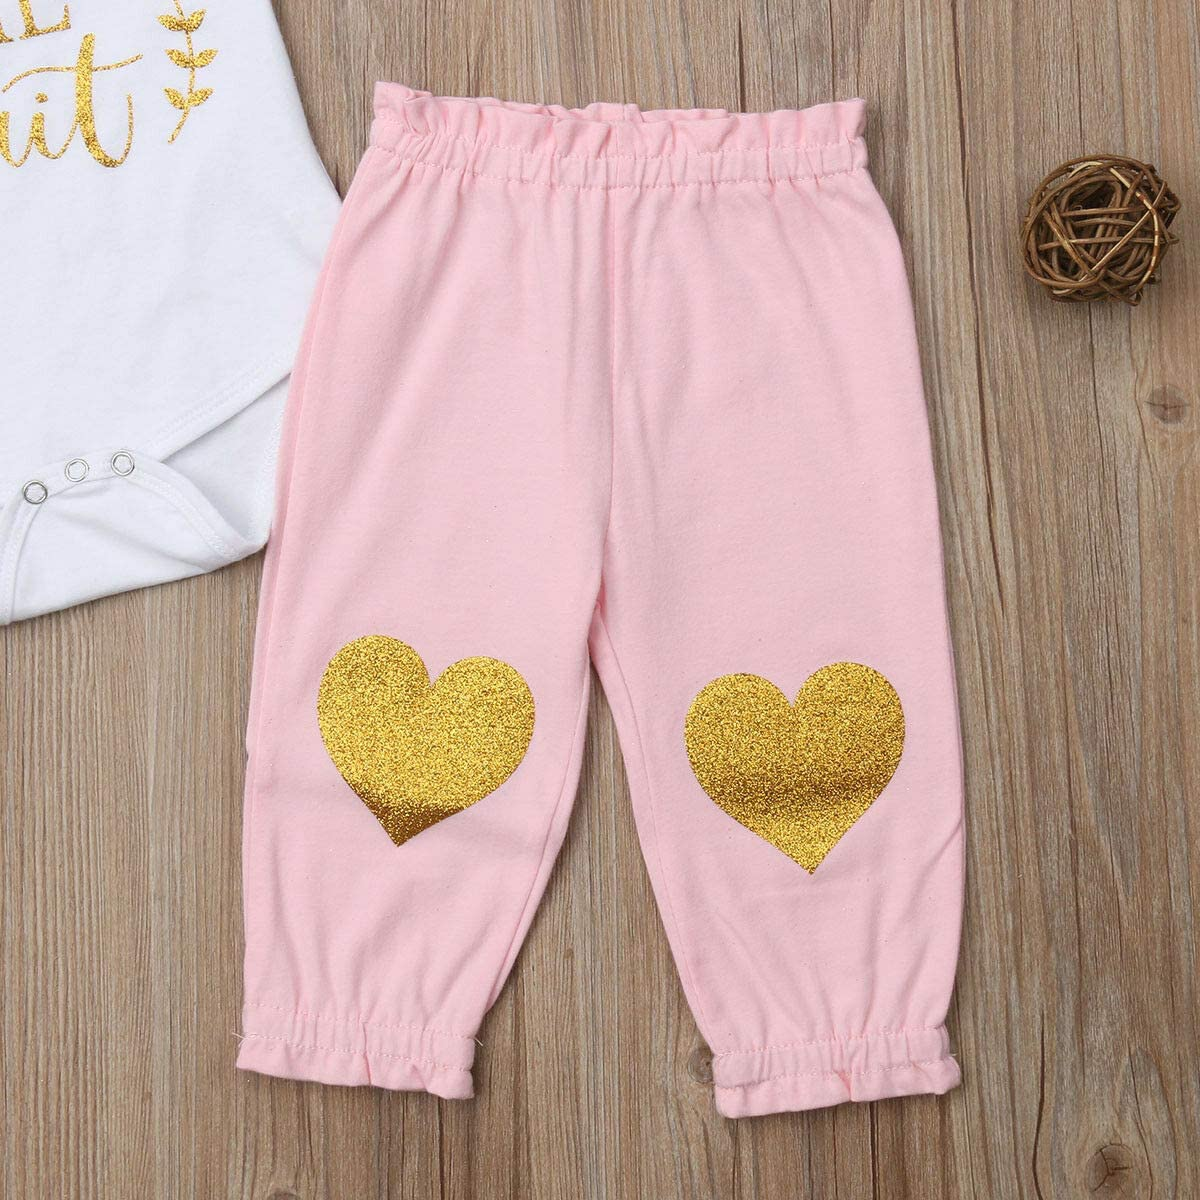 Douhoow 3PCS Infant Baby Girls Outfits Short Sleeve Romper Worth The Wait Long Pants with Headband Clothes Set